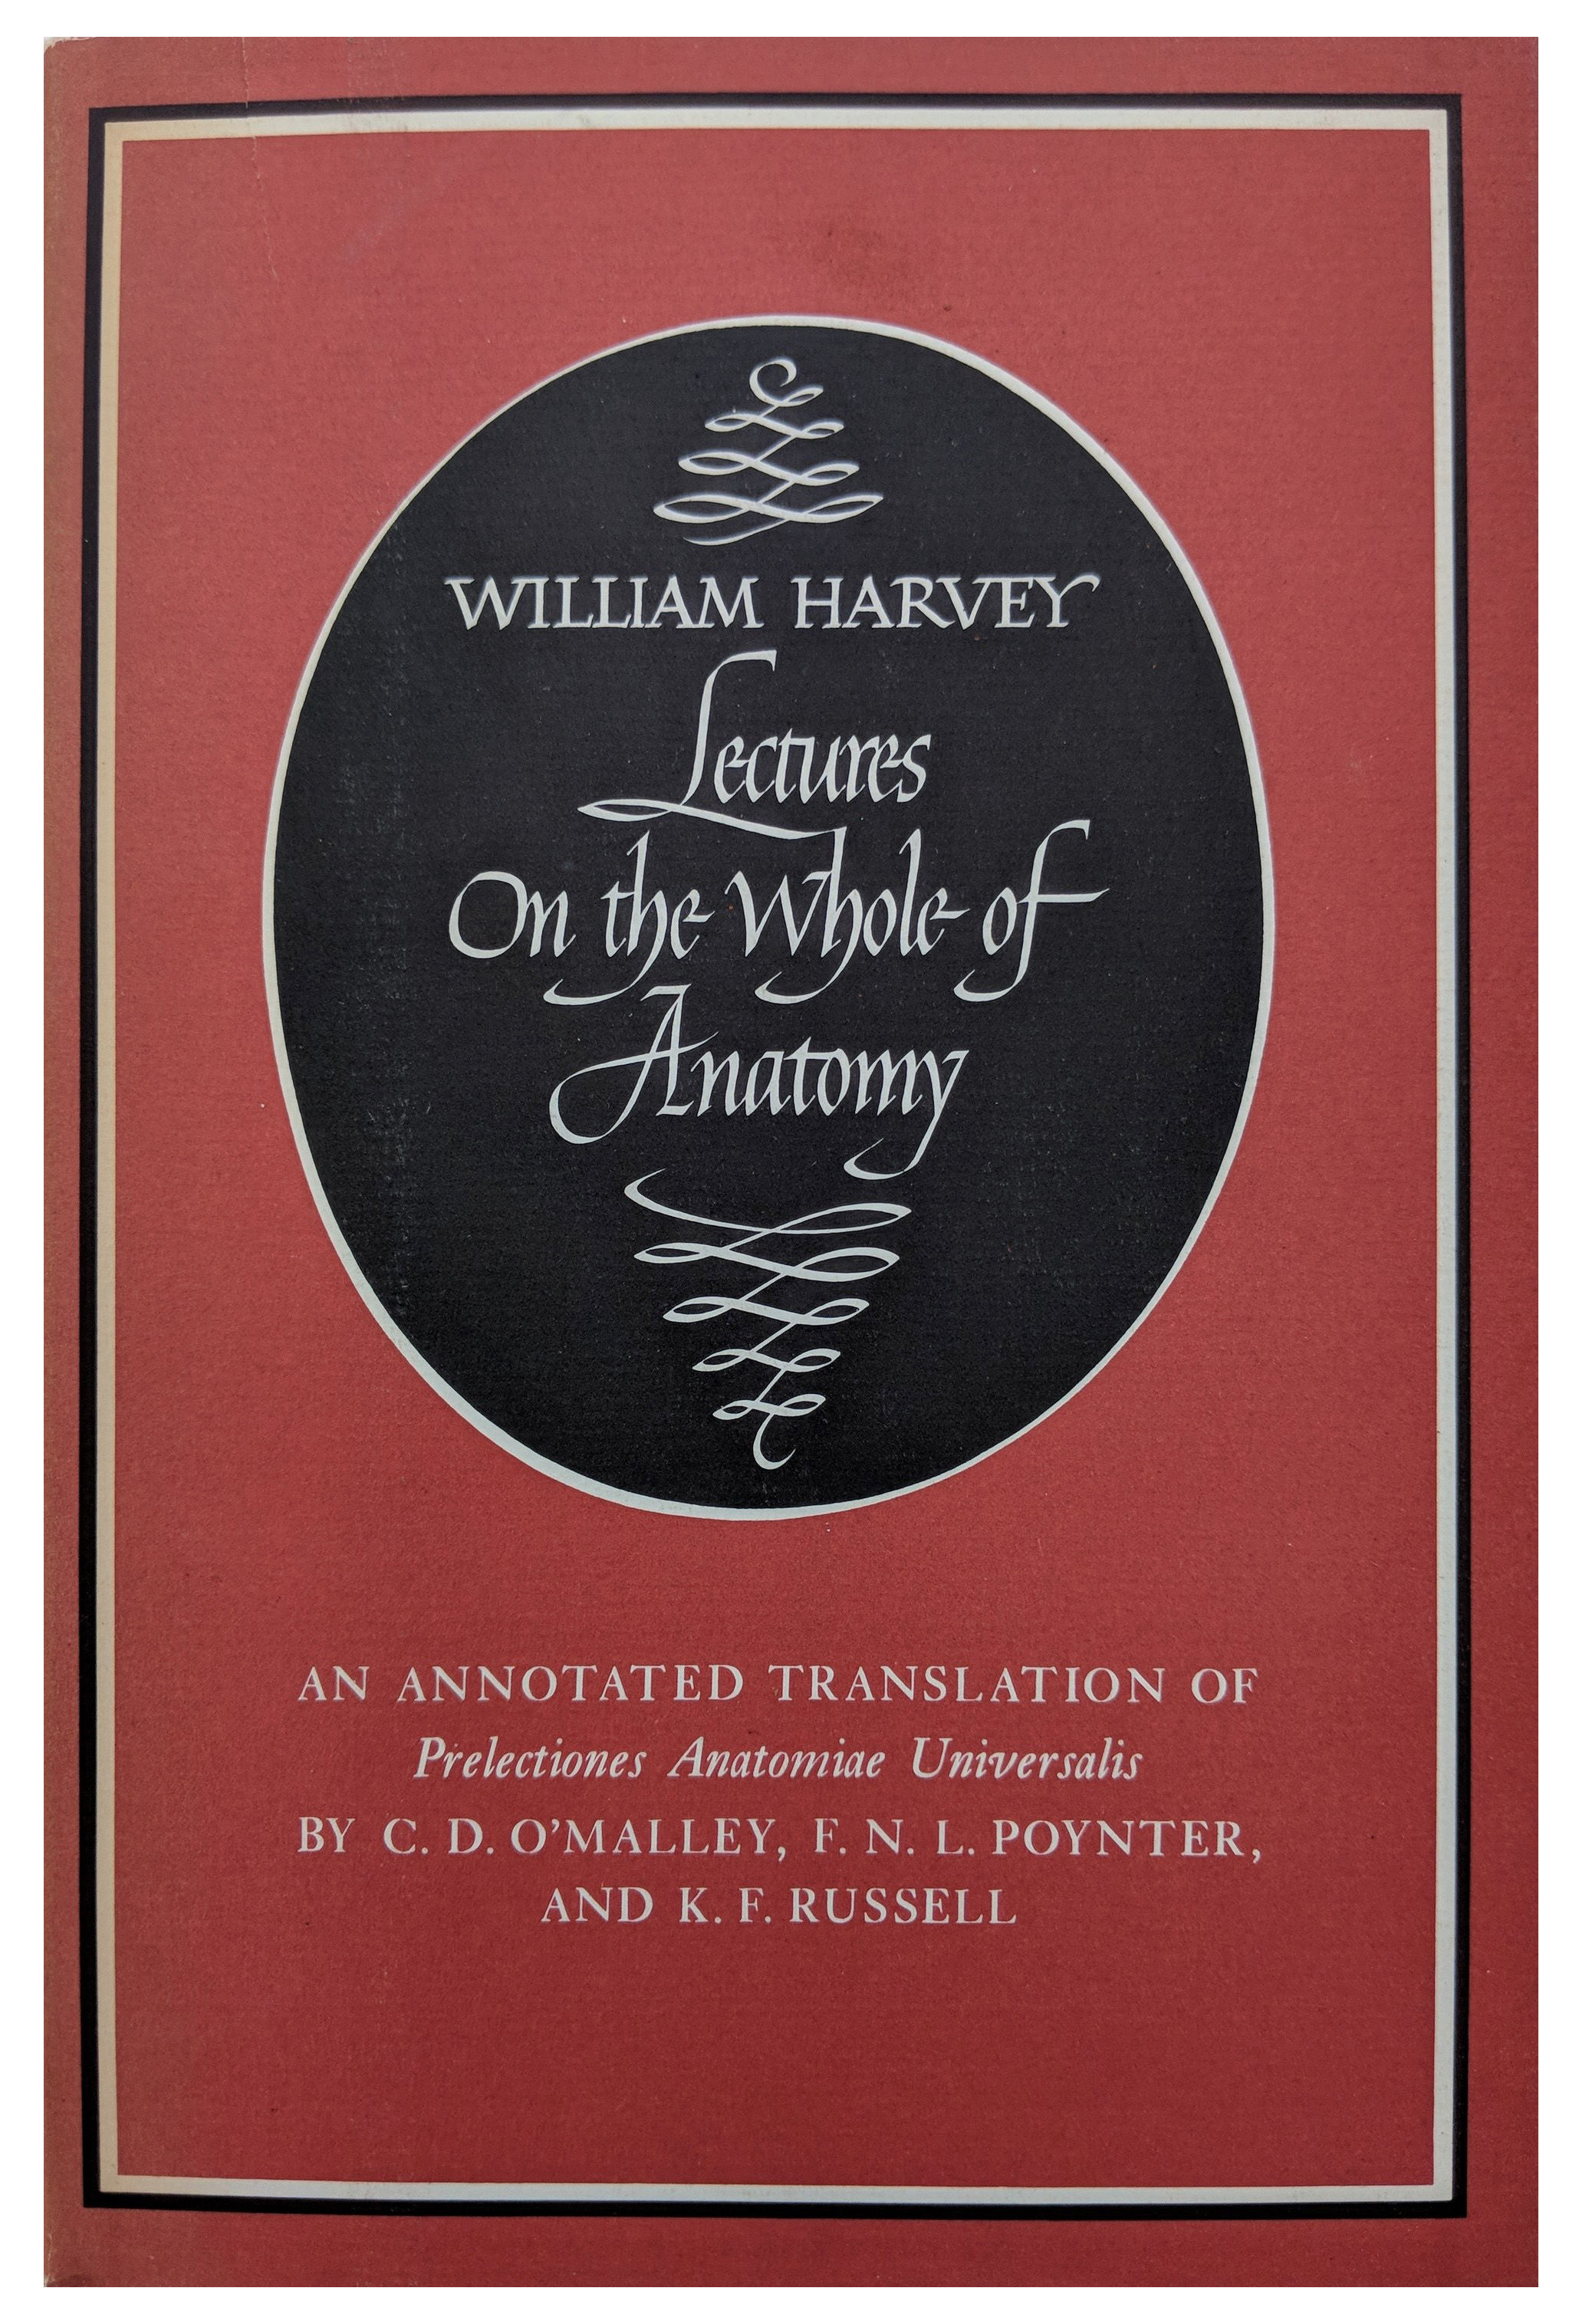 Image for William Harvey: Lectures on the Whole of Anatomy.